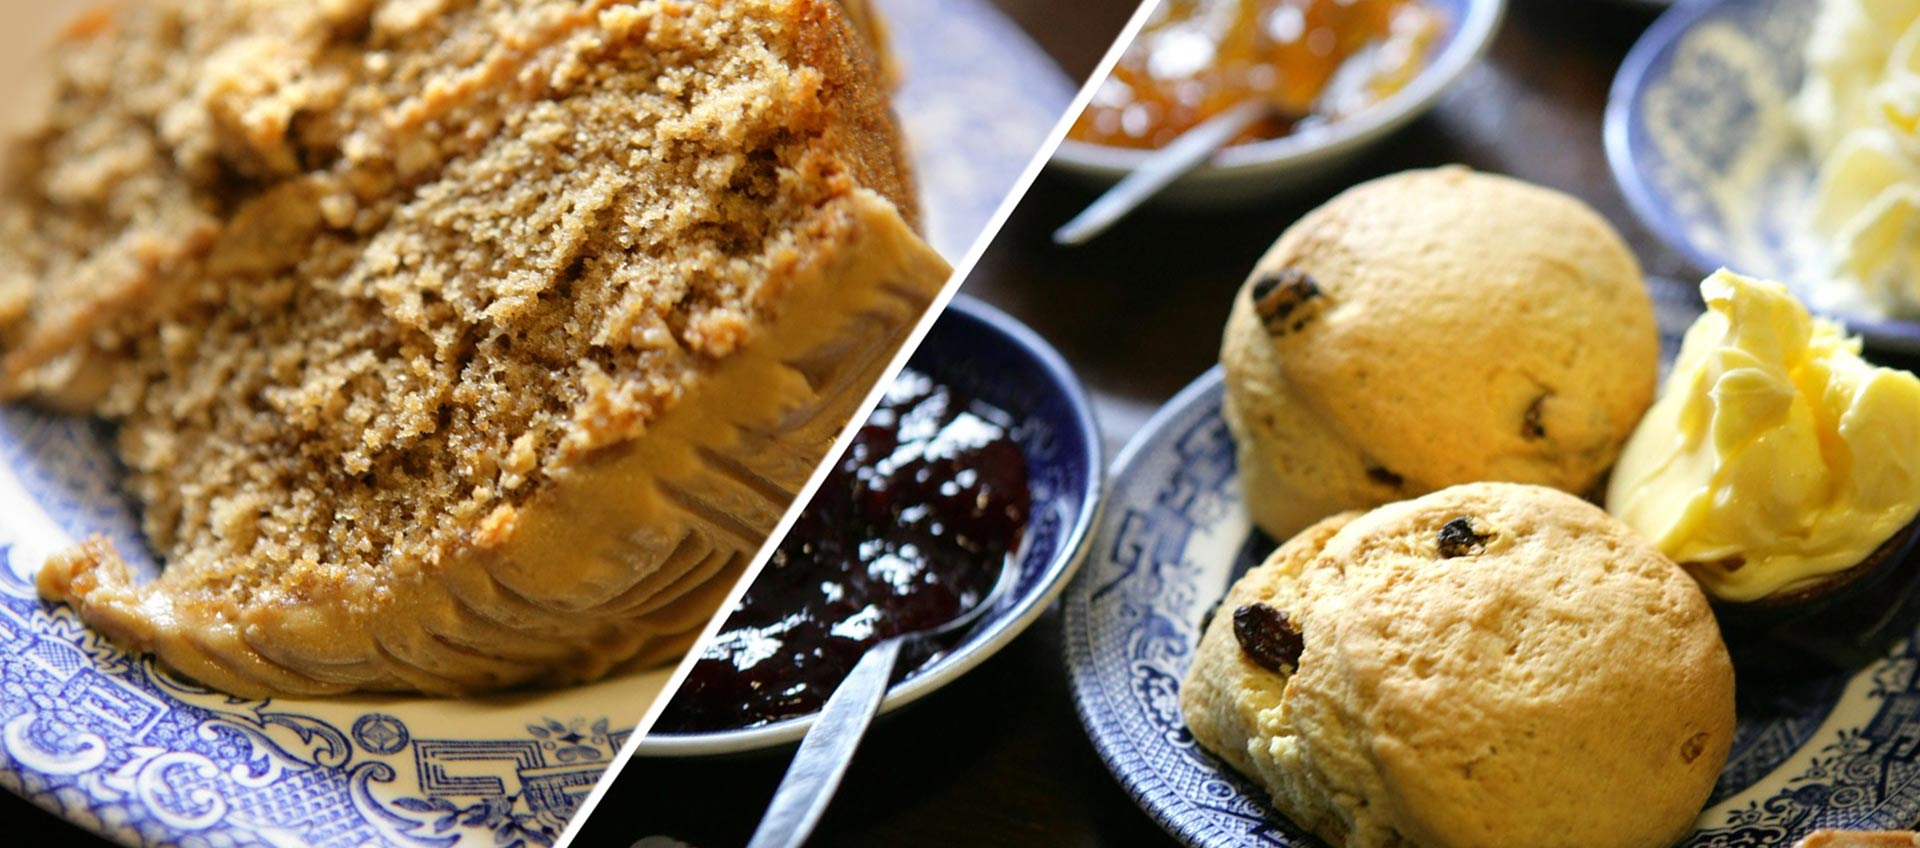 Conwy Cake and Scones